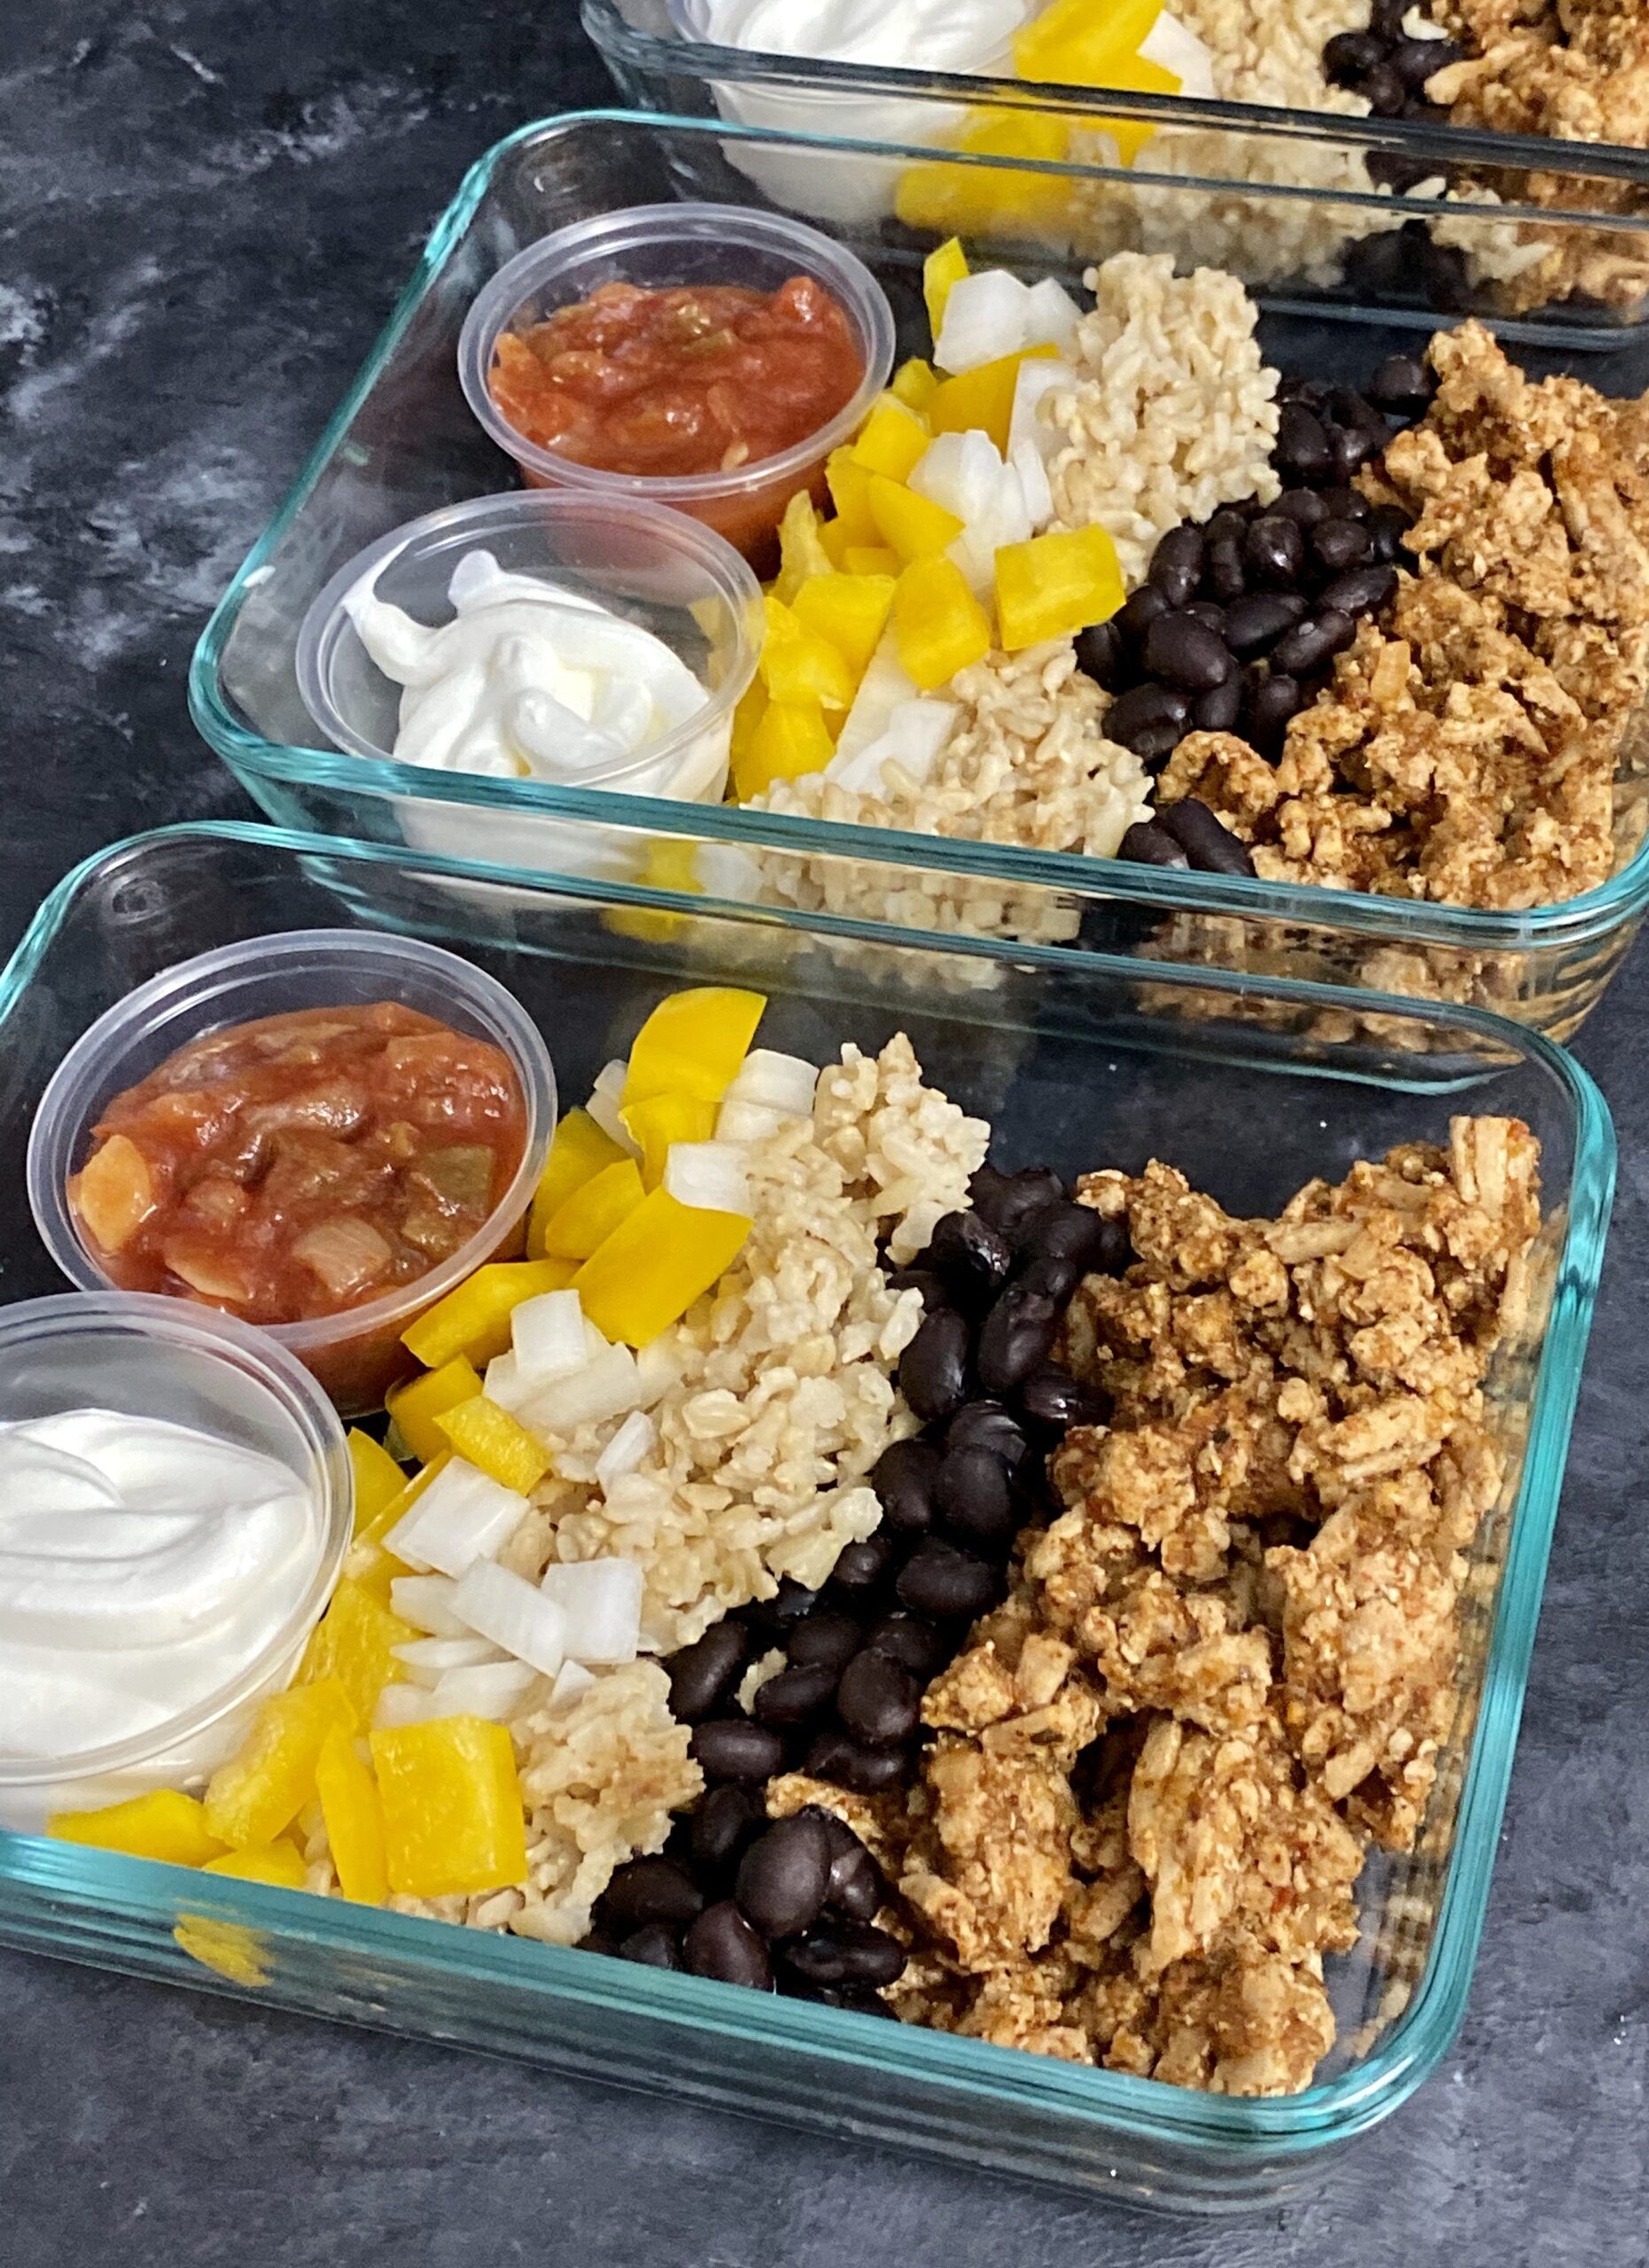 10 Ground Turkey Recipes to Meal Prep This Weekend - Organize Yourself Skinny #groundturkeytacos